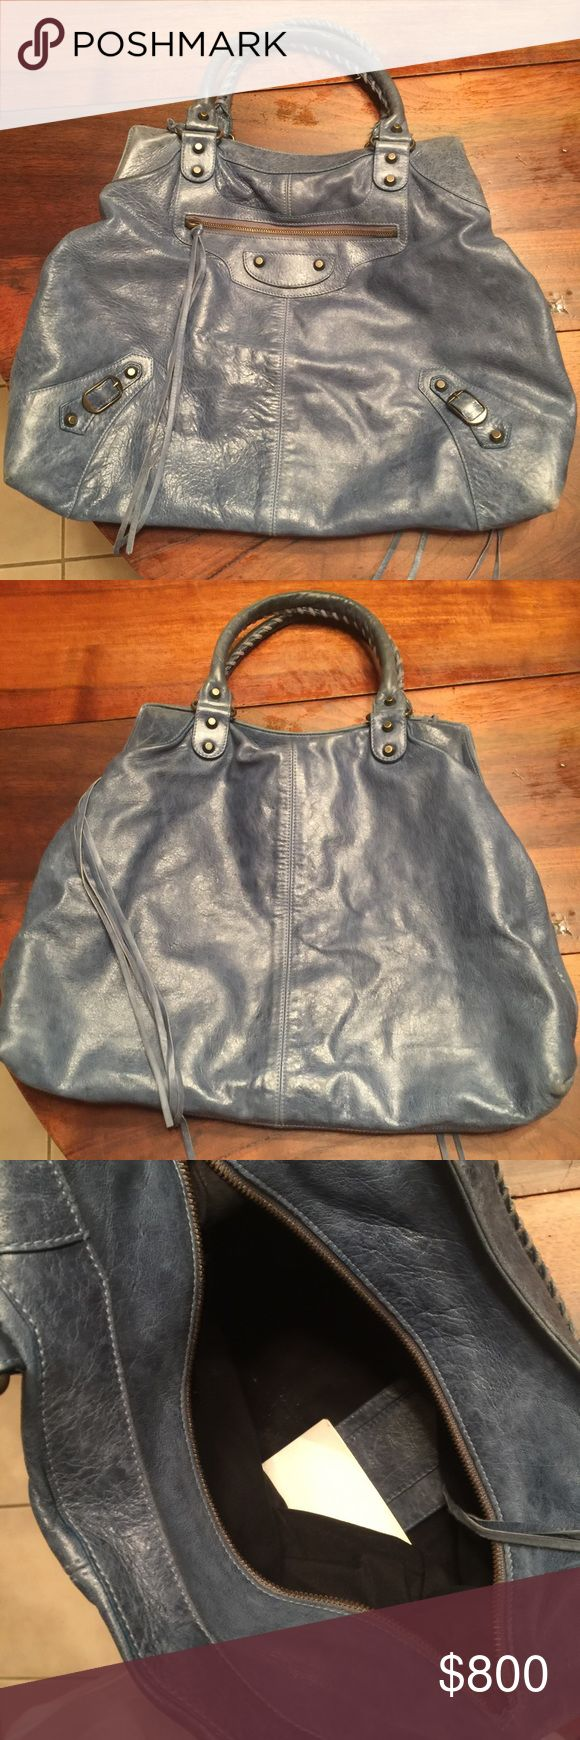 Balenciaga handbag Authentic balenciaga handbag (poshmark authenticates everything over $500) / used but in good condition/ large/ very stylish goes with anything/ beautiful blue color / please ask any questions you may have/ Balenciaga Bags Hobos